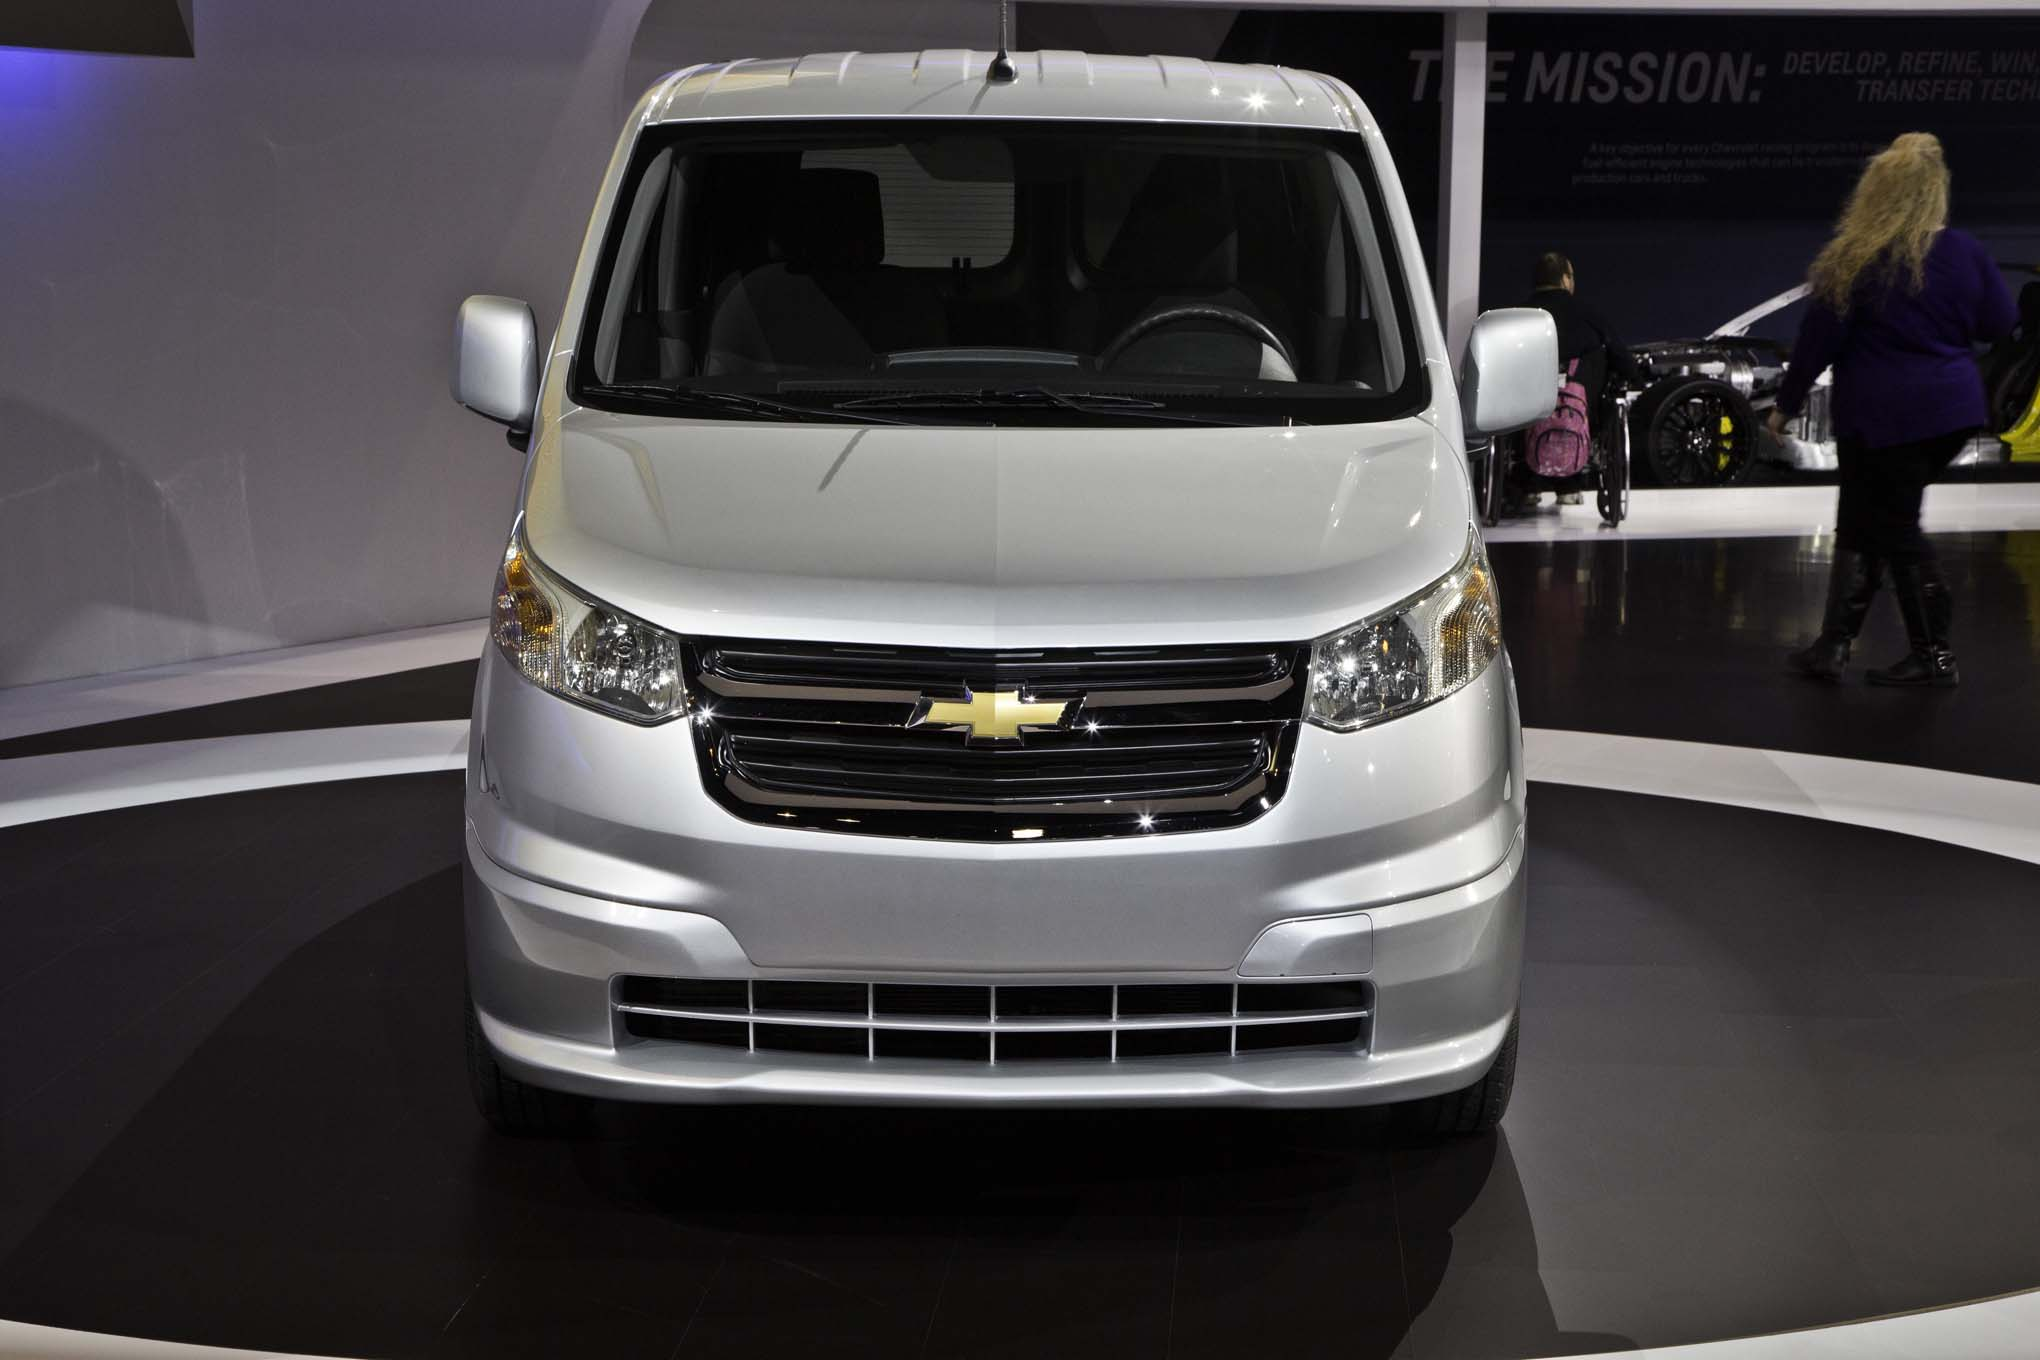 2015 chevrolet city express small cargo van review 468 cars performance reviews and test drive. Black Bedroom Furniture Sets. Home Design Ideas